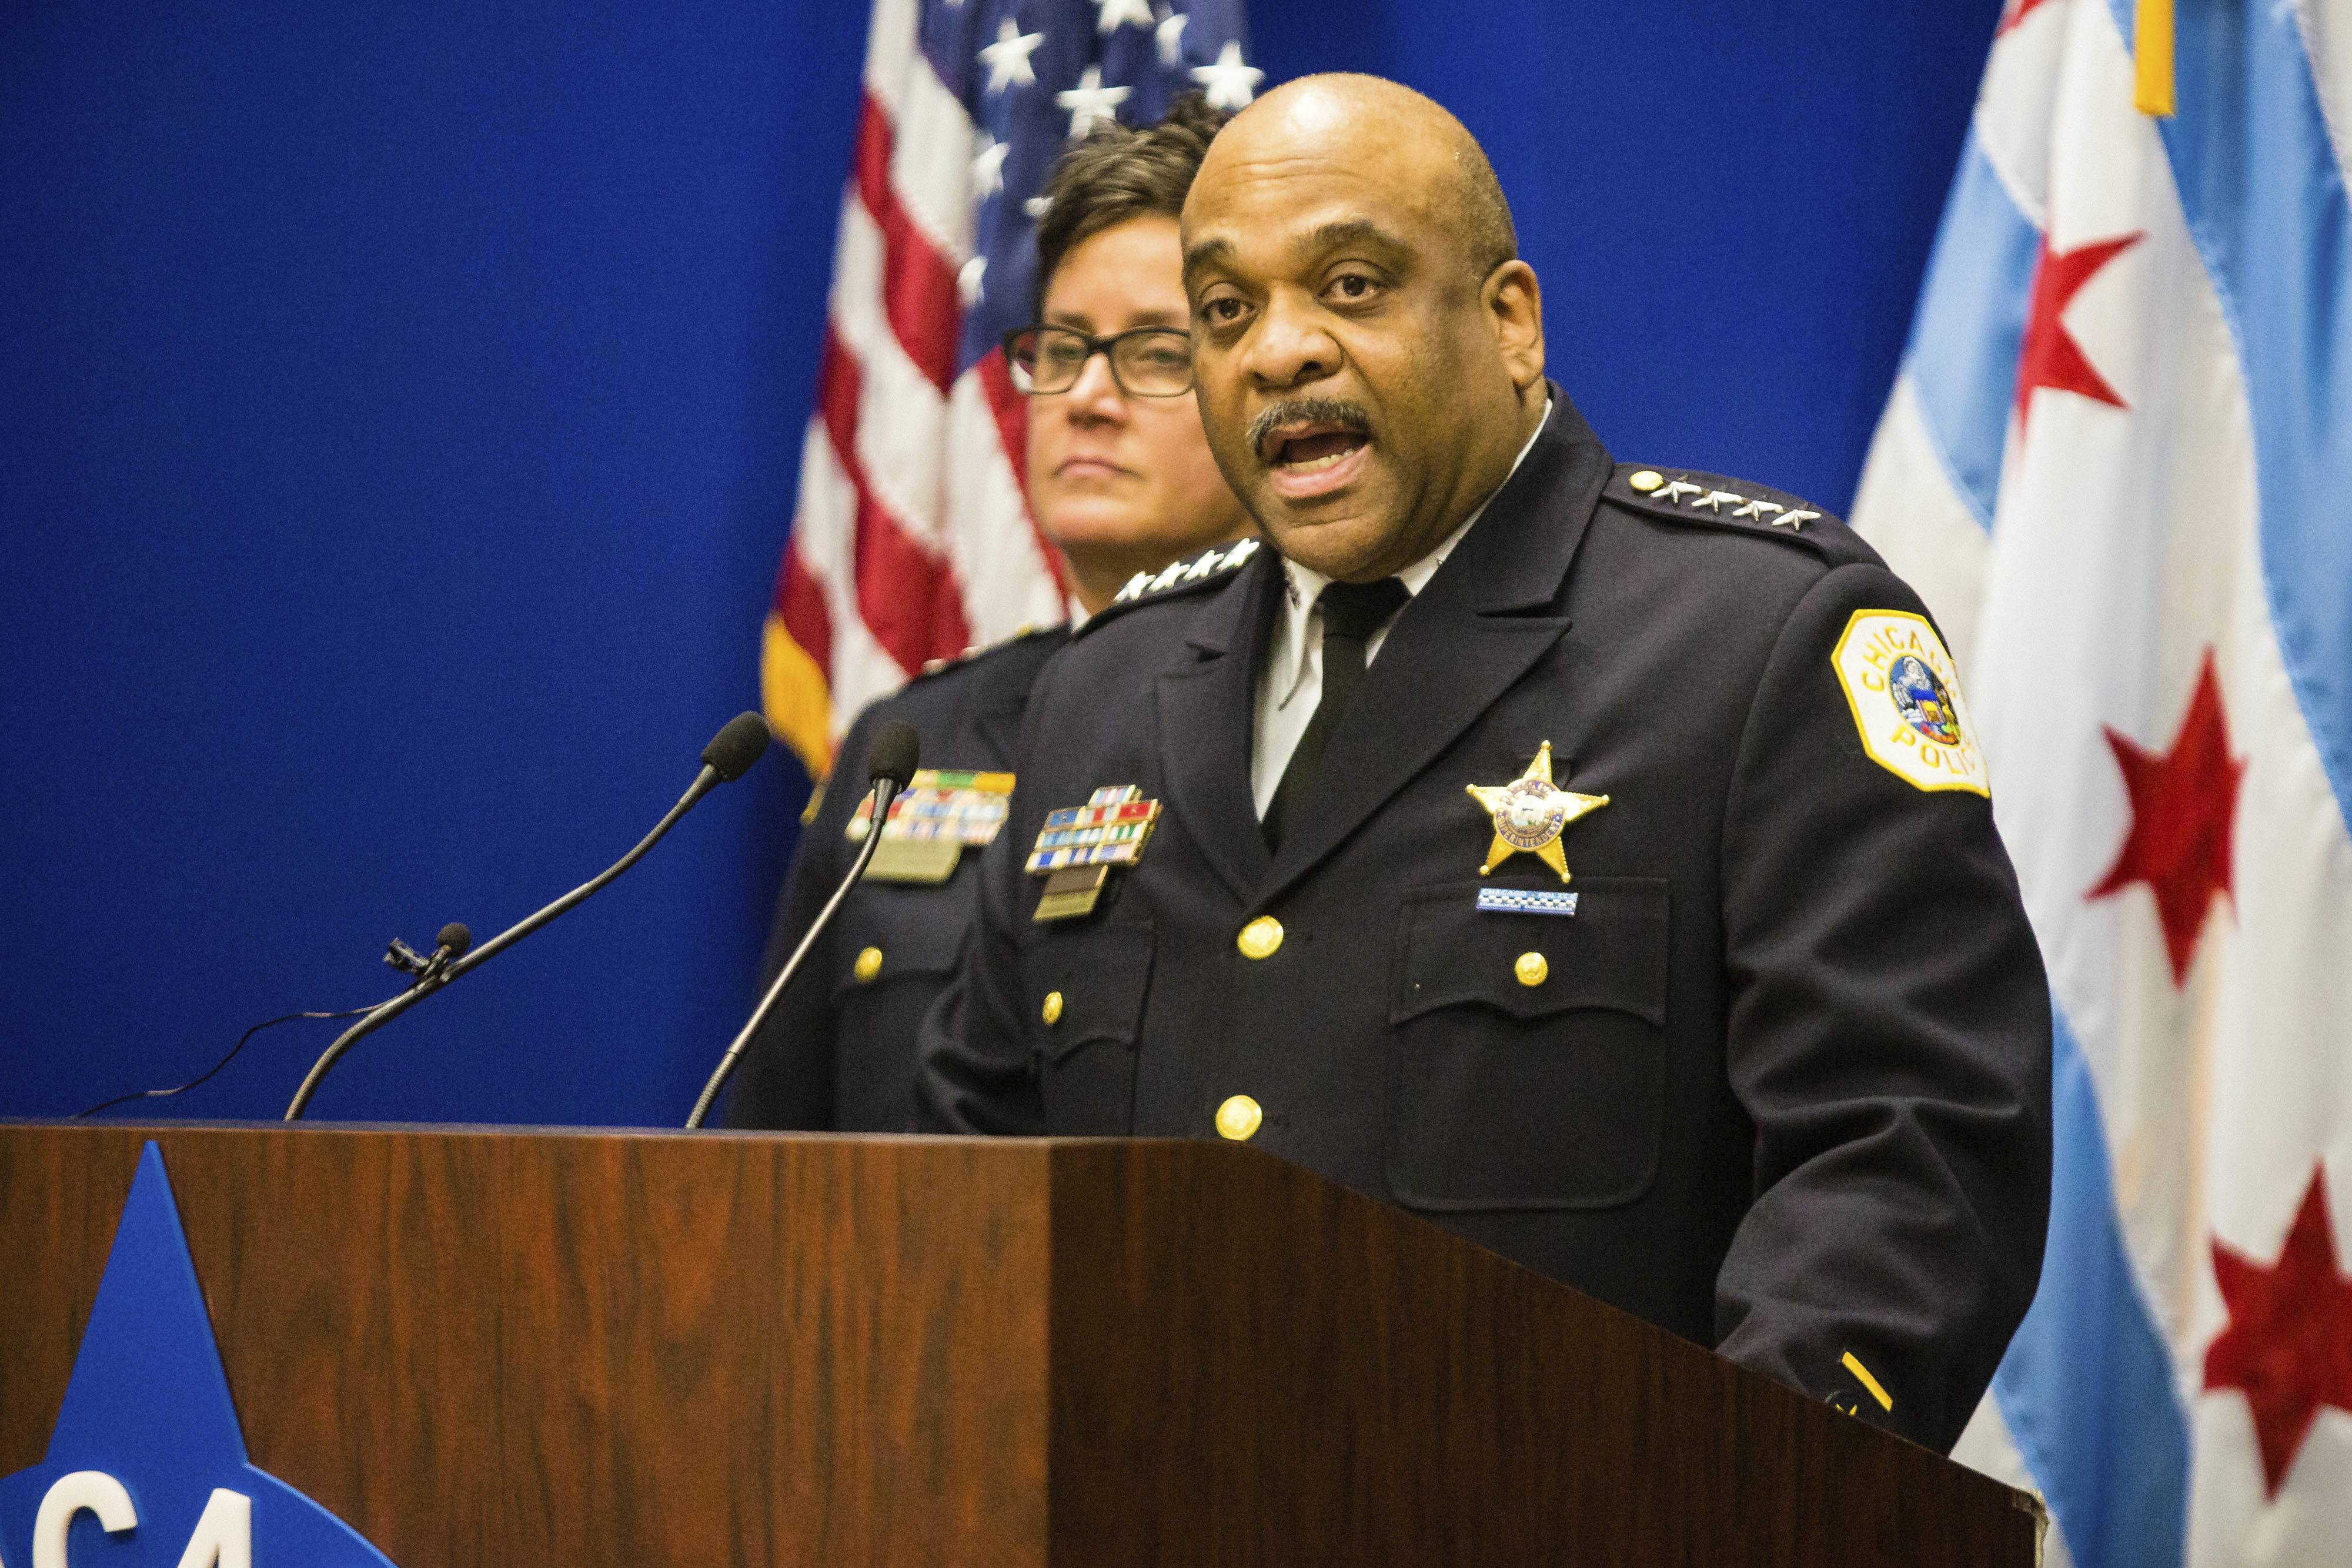 Chicago Police Superintendent Eddie Johnson speaks during a news conference Thursday about hate crime and other charges filed against four individuals for an attack on a man that was captured on a Facebook video.